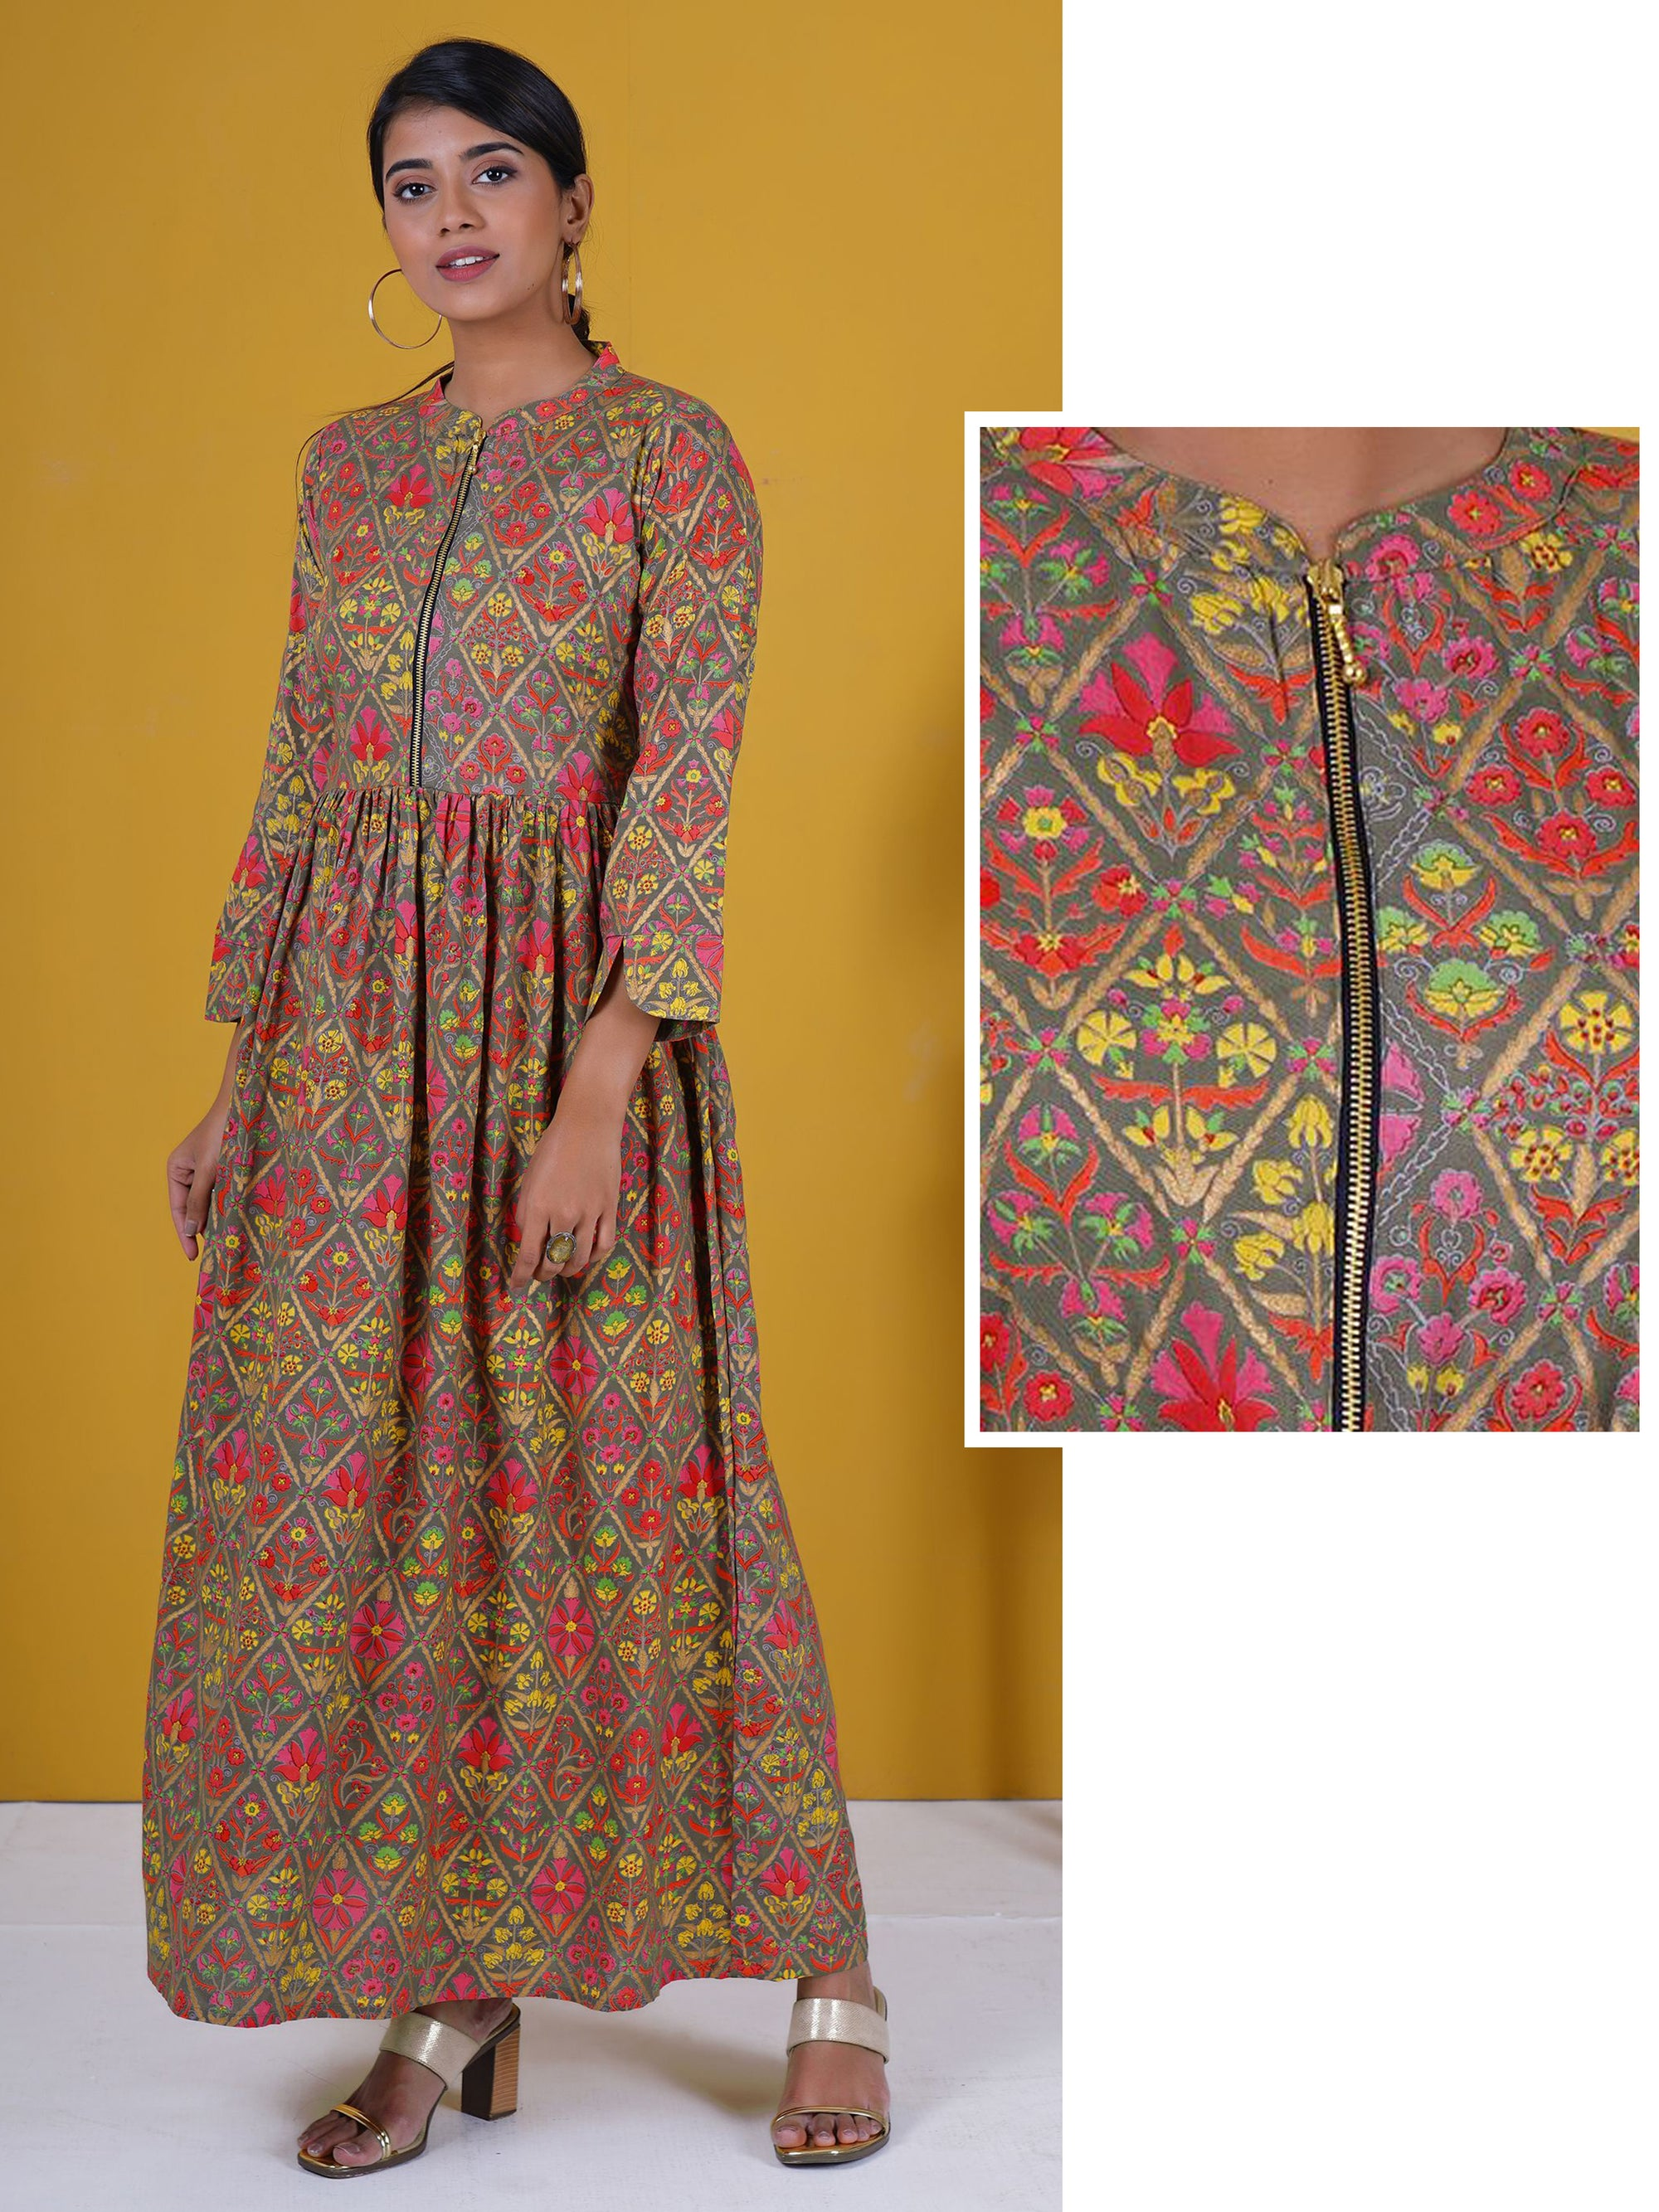 Golden Metal Zippered Floral Busy Khadi Printed Cotton Kurti